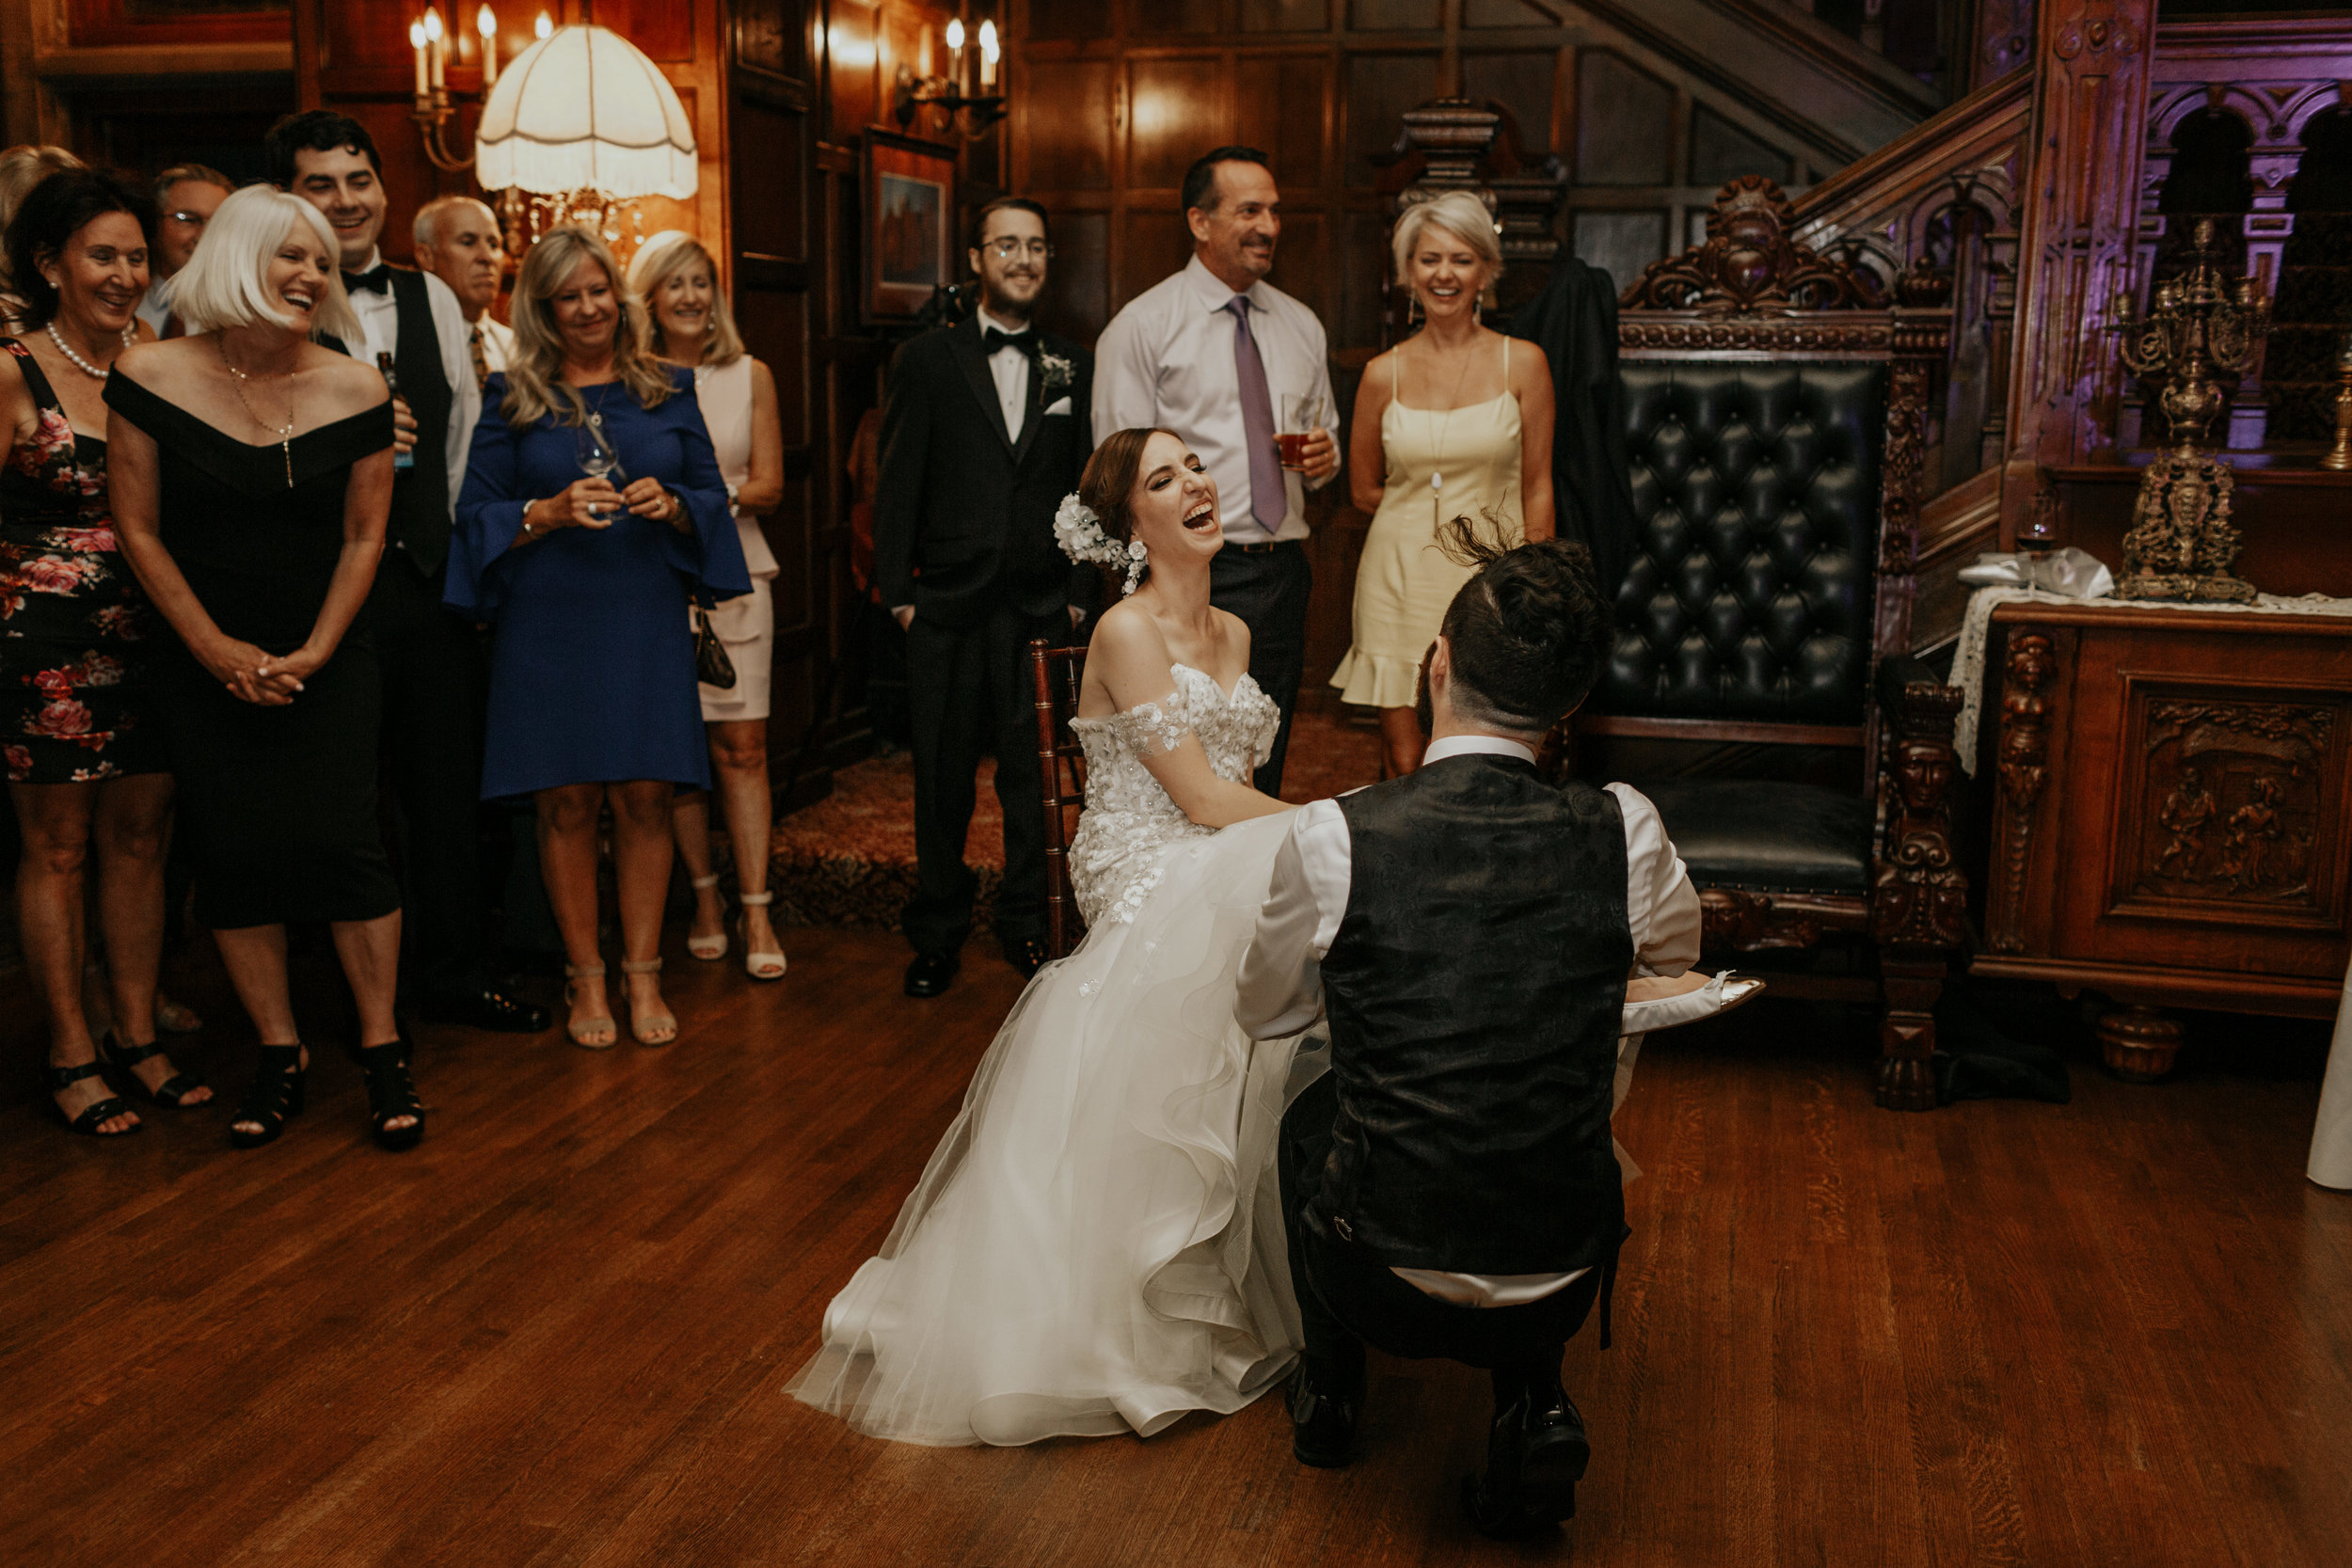 ginapaulson_averyjoey_wedding (1266 of 1511).jpg